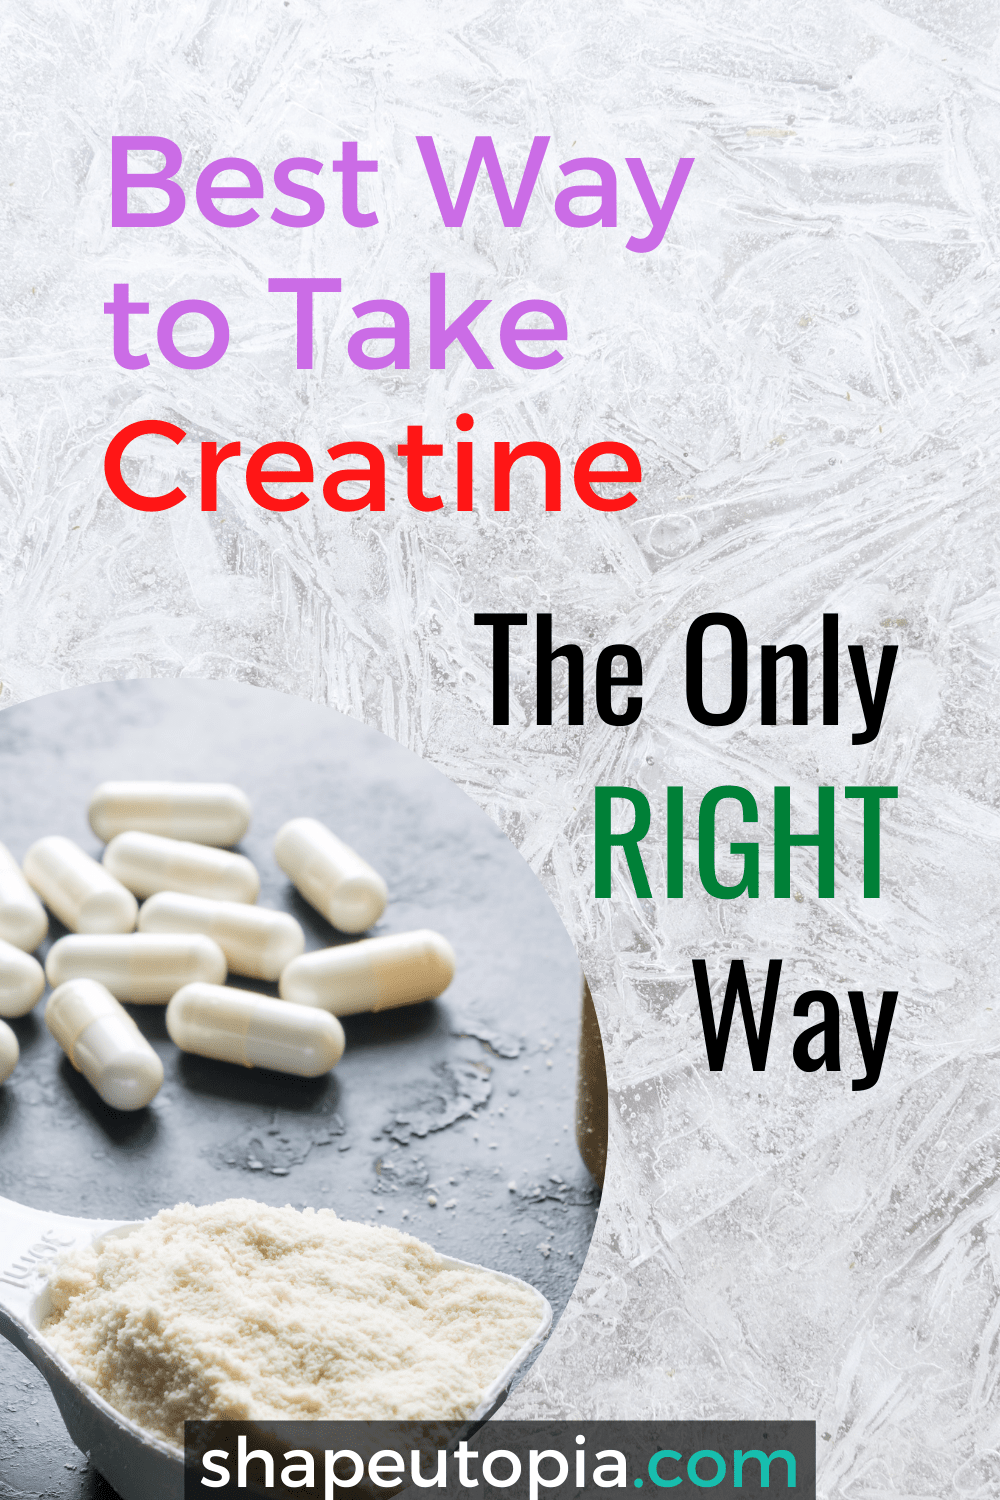 Best Way to Take Creatine – The Only RIGHT way